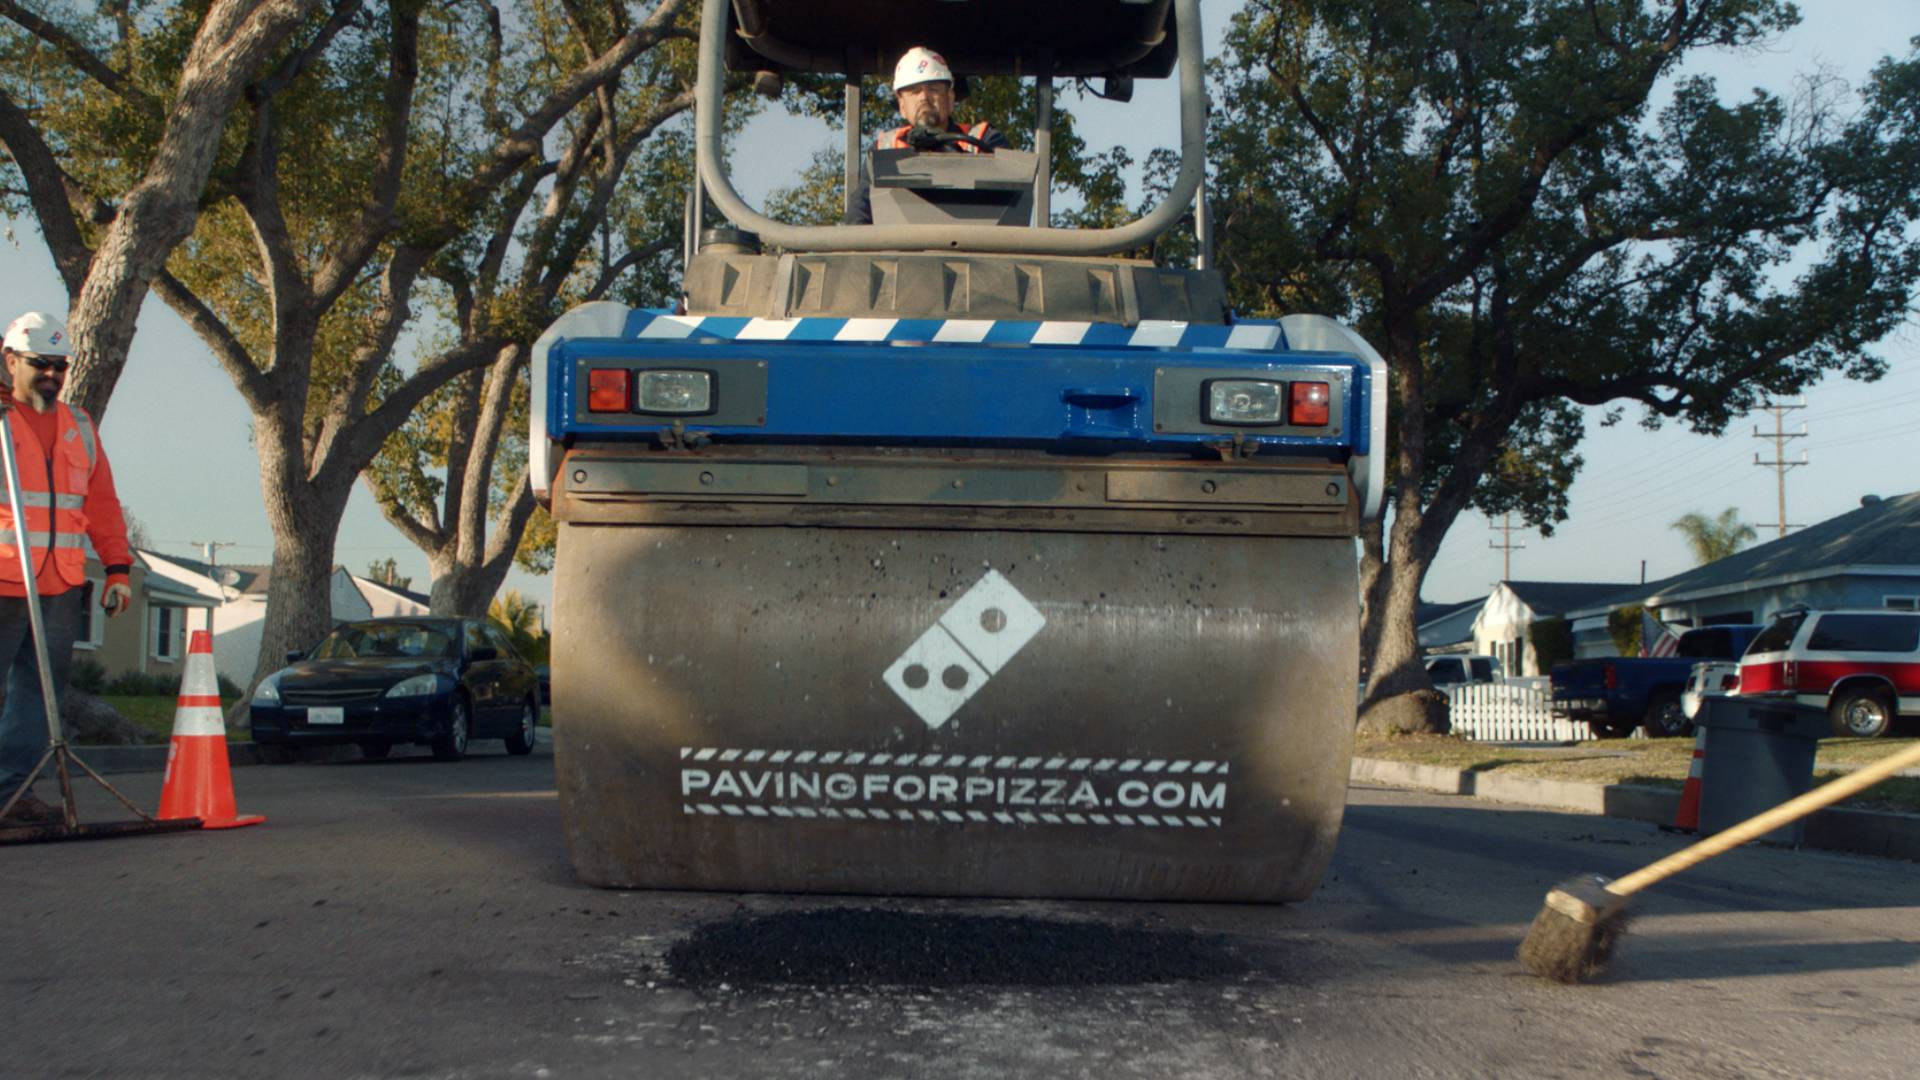 From Pizzas to Potholes: Domino's Now Delivers Road Repairs